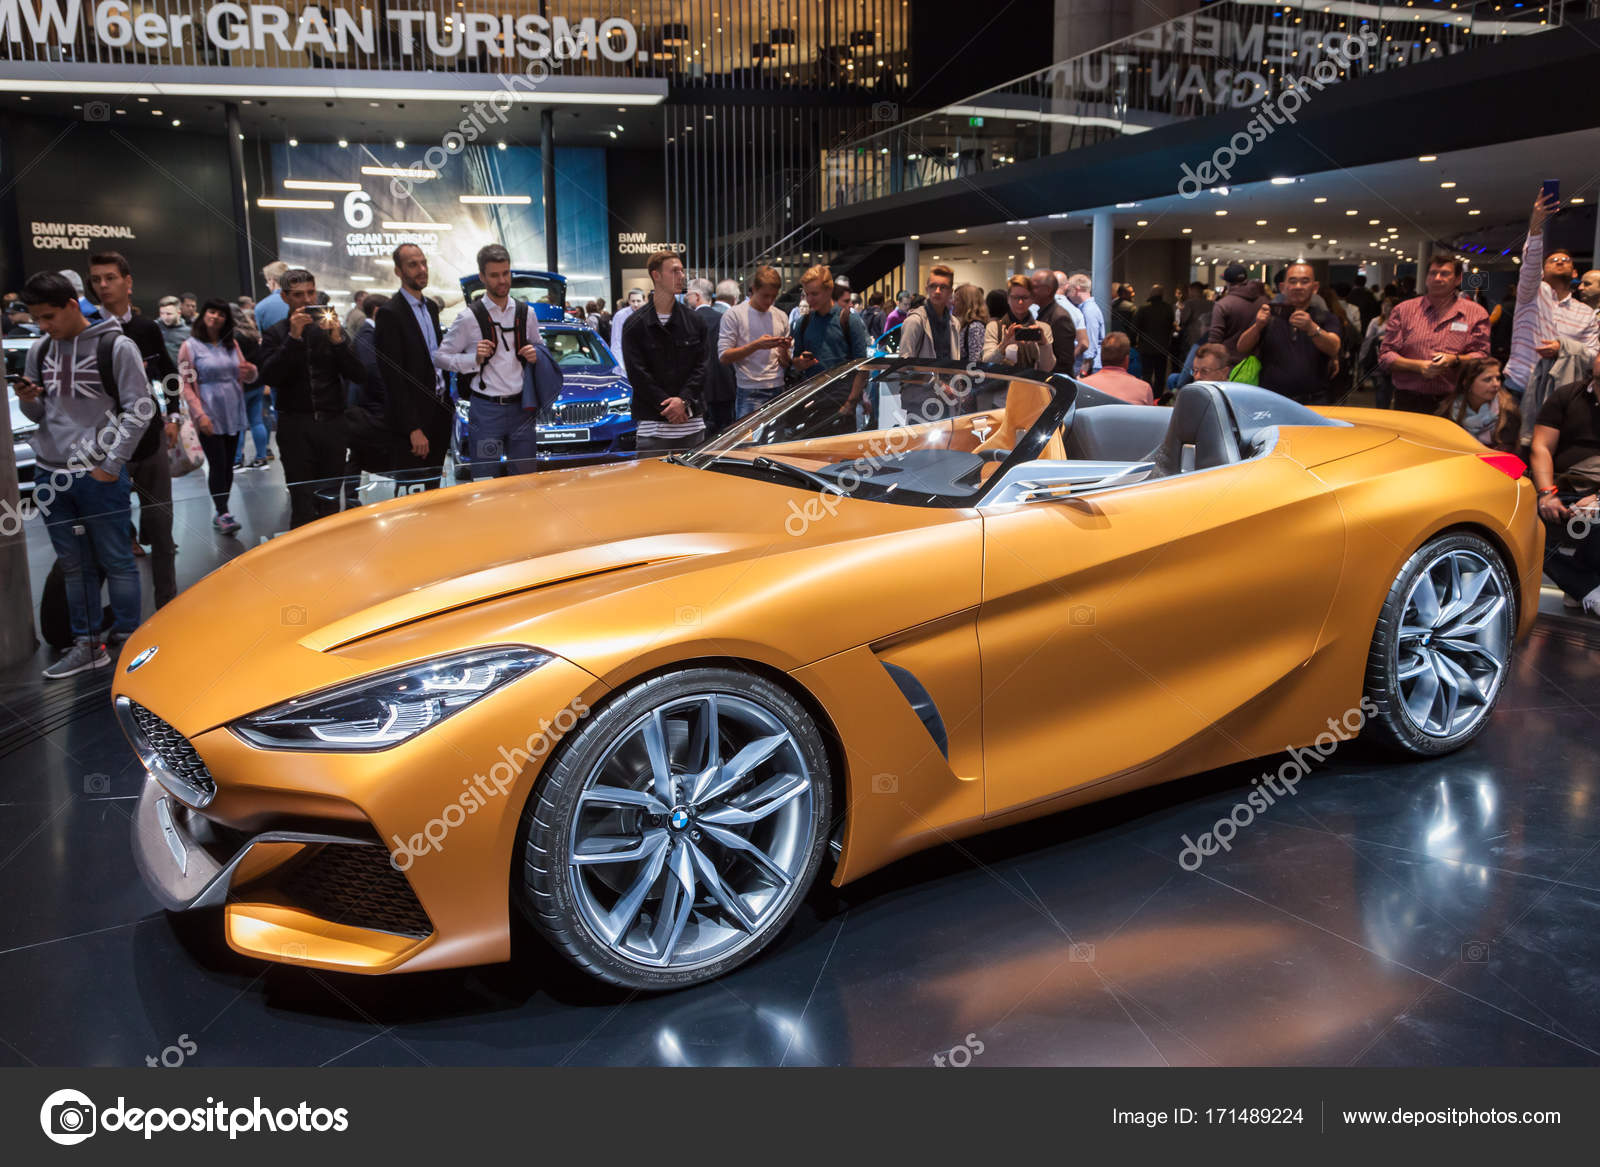 Bmw Z4 Concept Stock Editorial Photo 169 Philipus 171489224